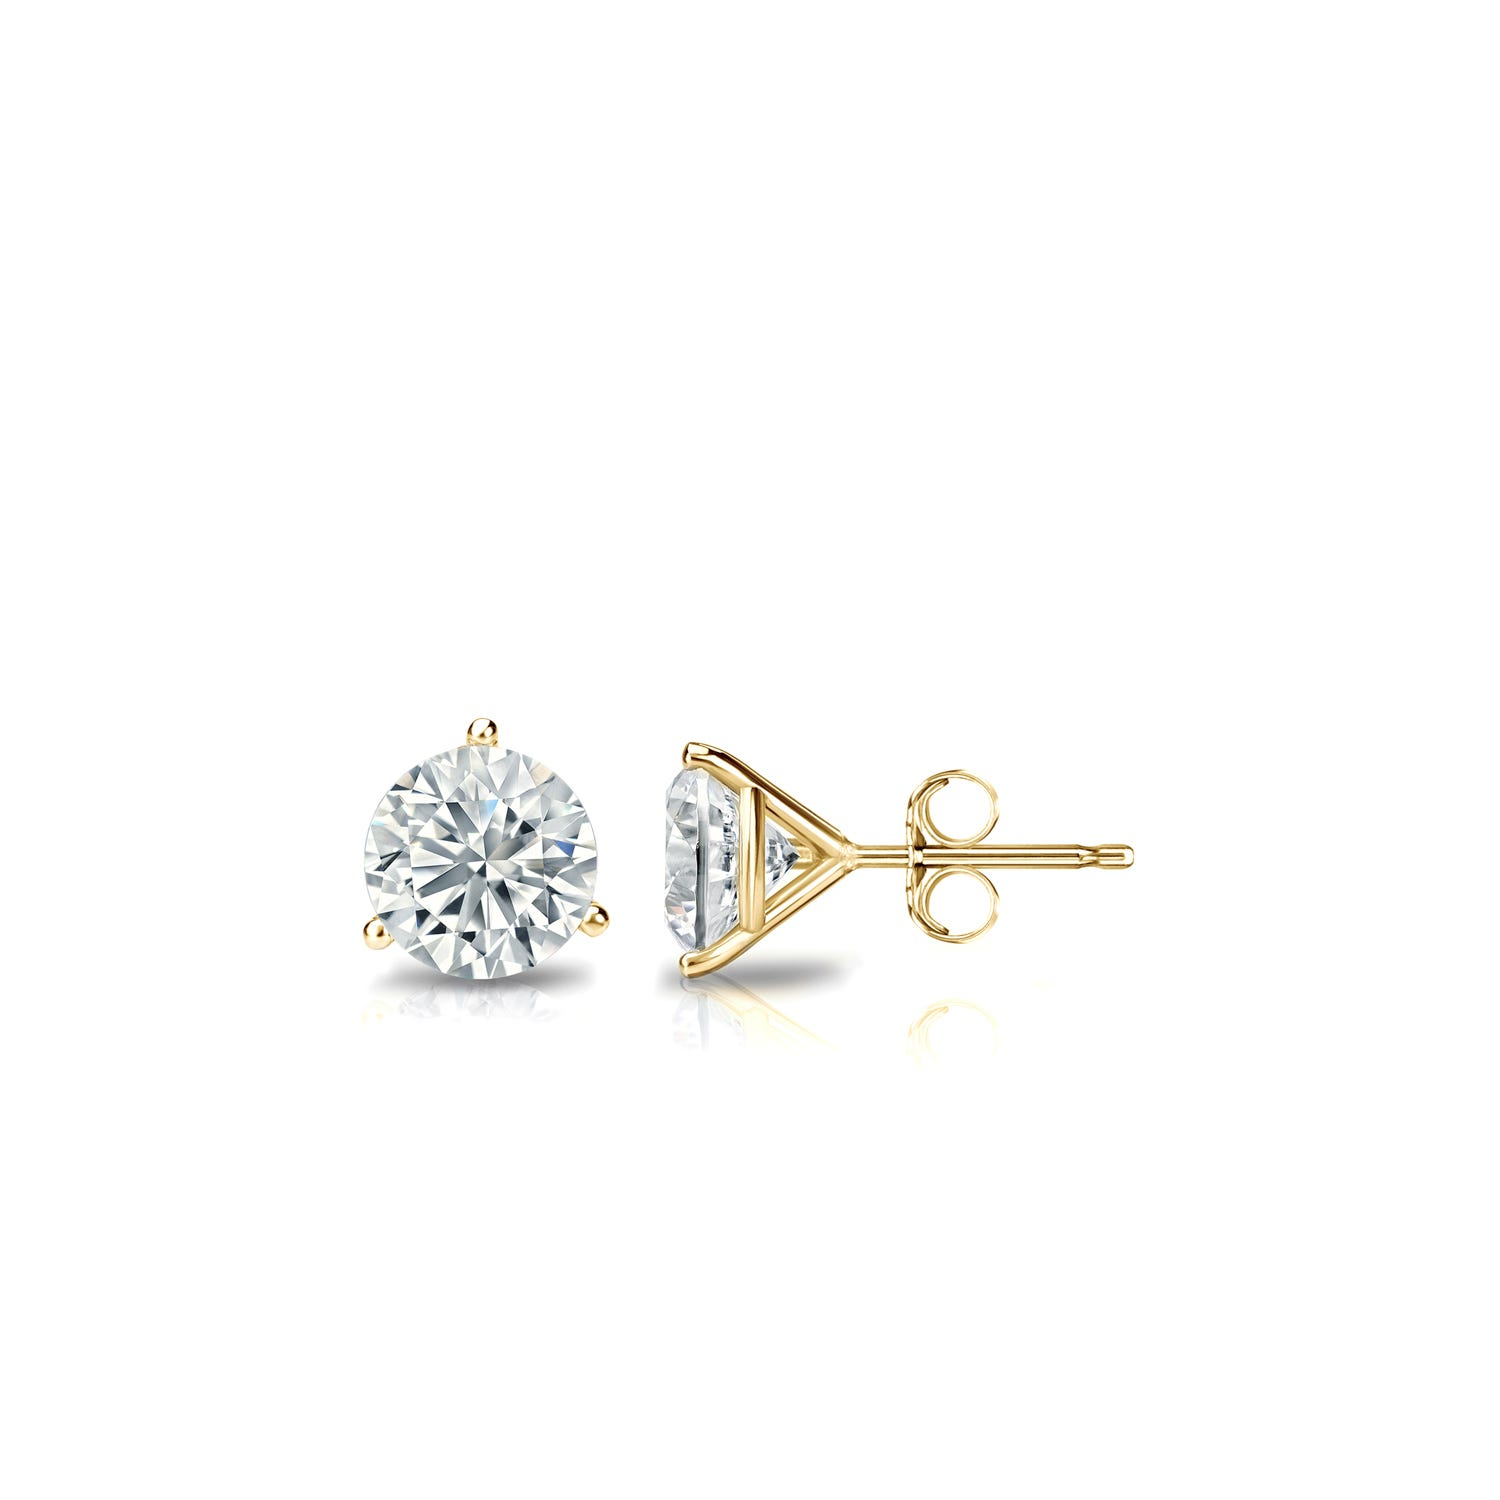 1/3 CTTW Round Diamond Solitaire Stud Earrings IJ I2 in 18K Yellow Gold 3-Prong Setting